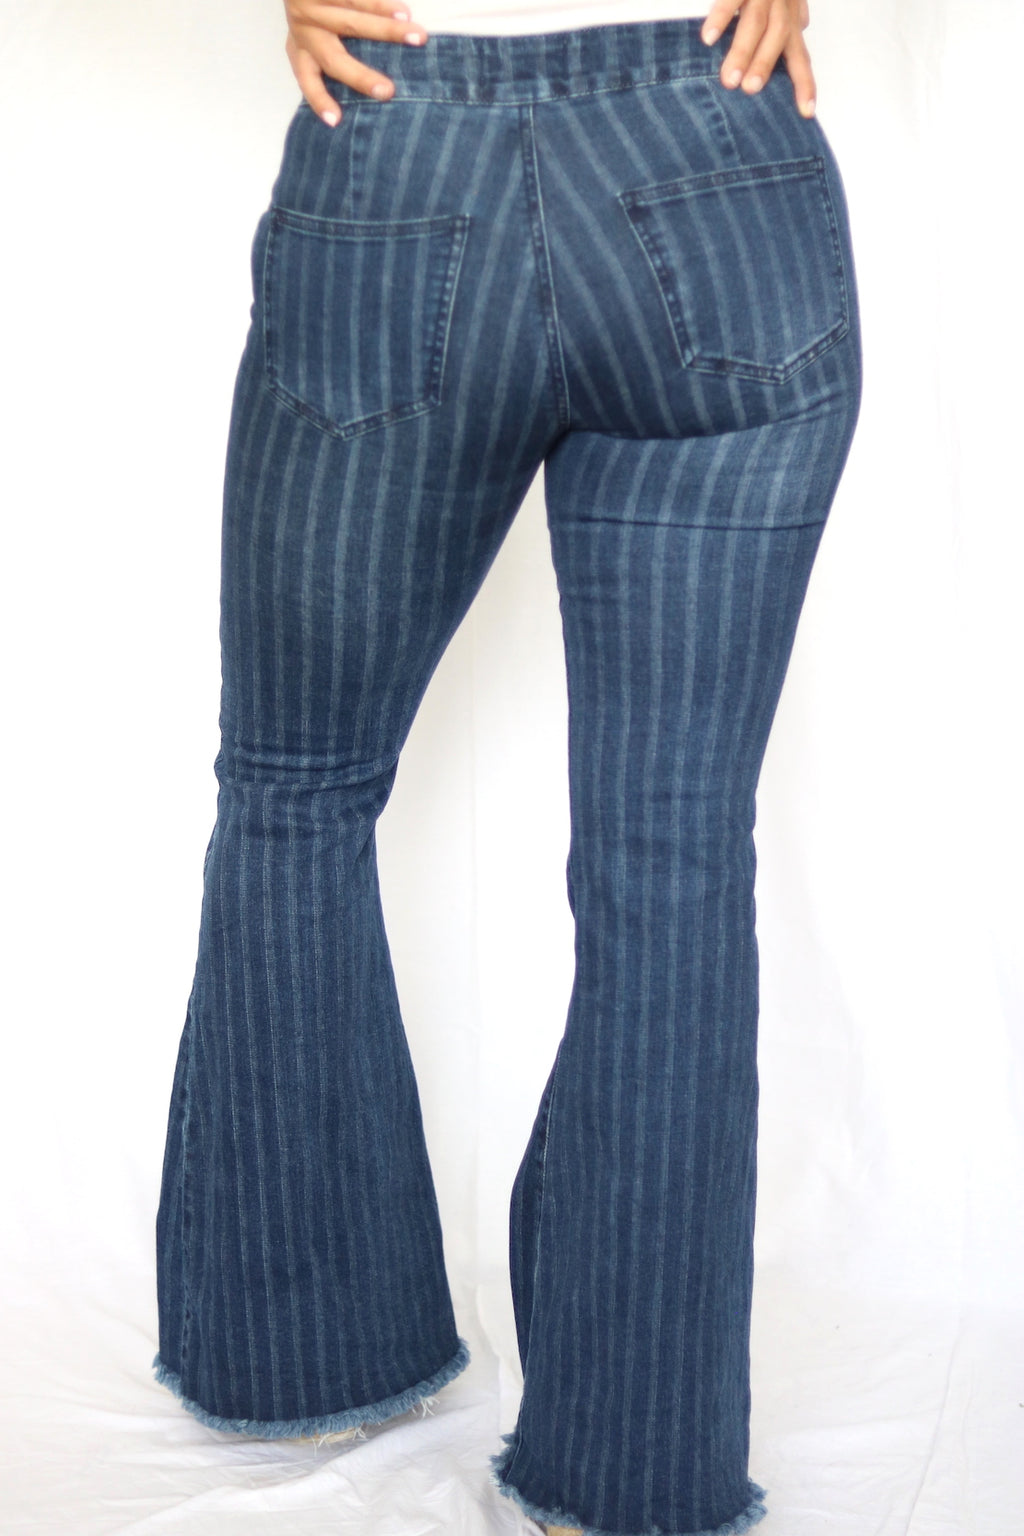 Pinstripe Flare Jeans